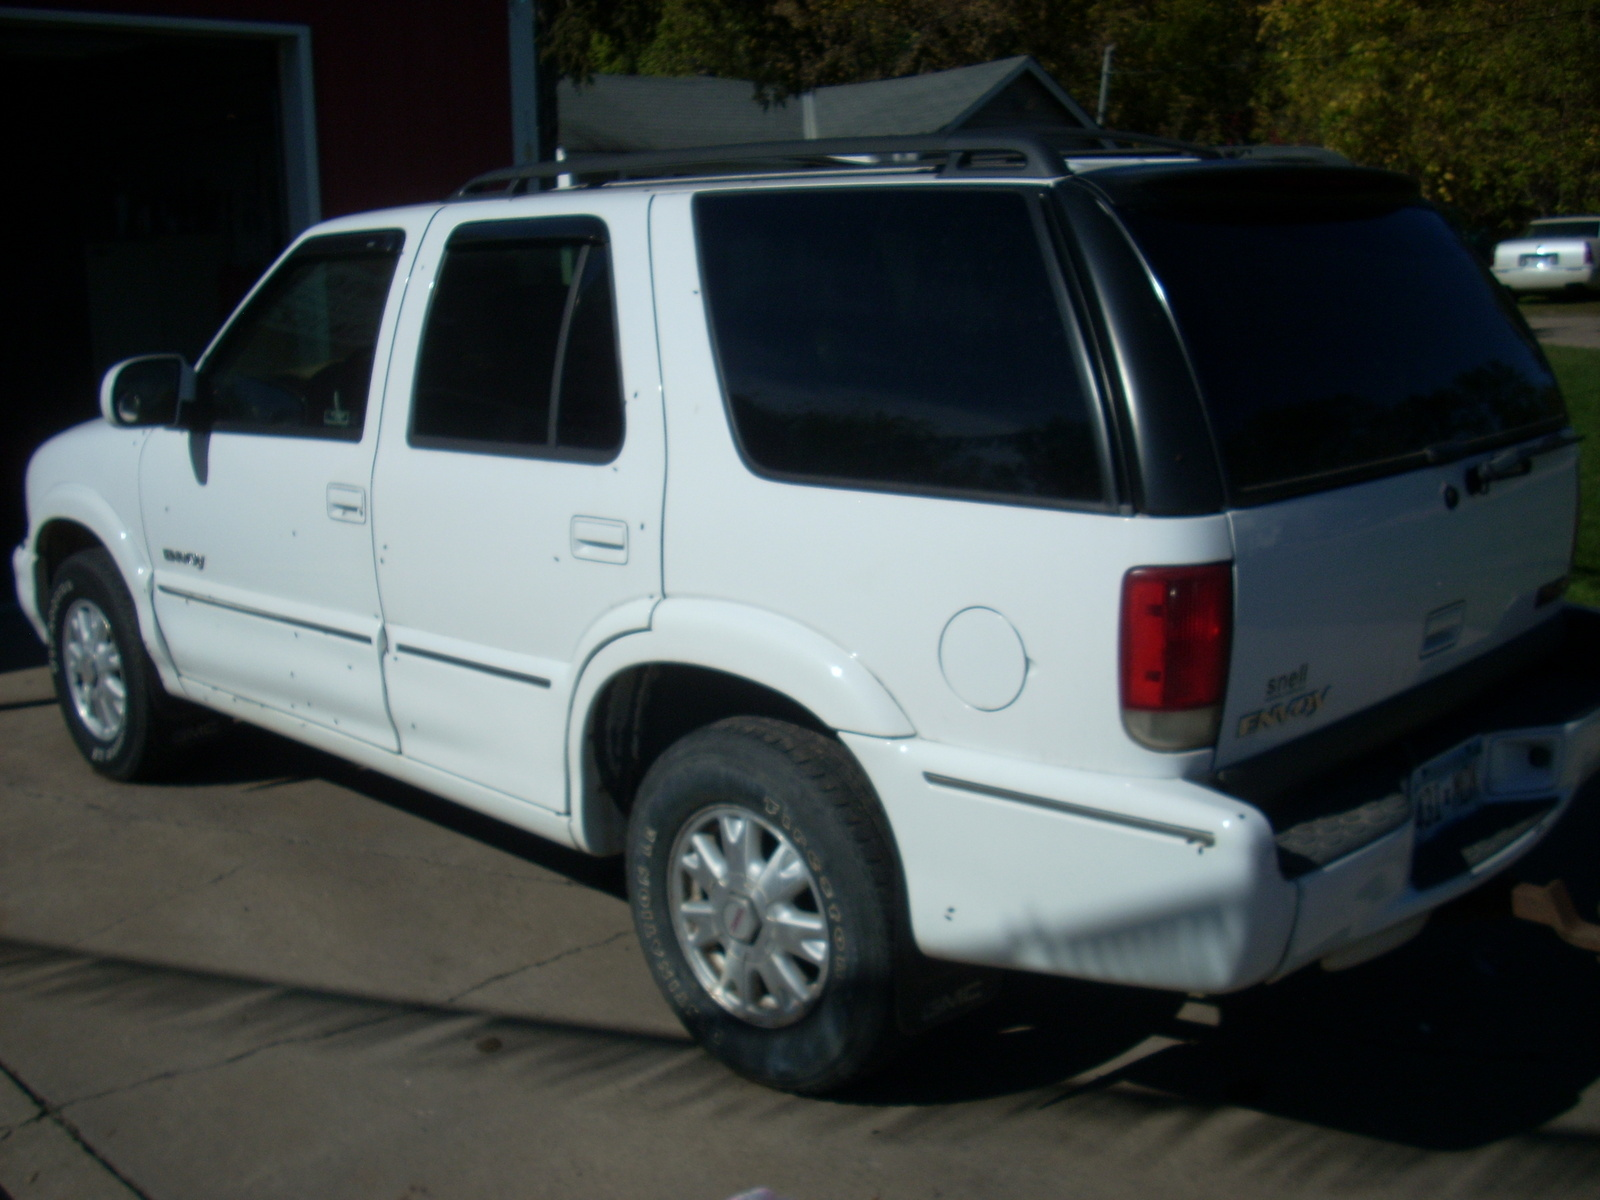 Toyota Suv Used >> 2000 GMC Envoy - Overview - CarGurus